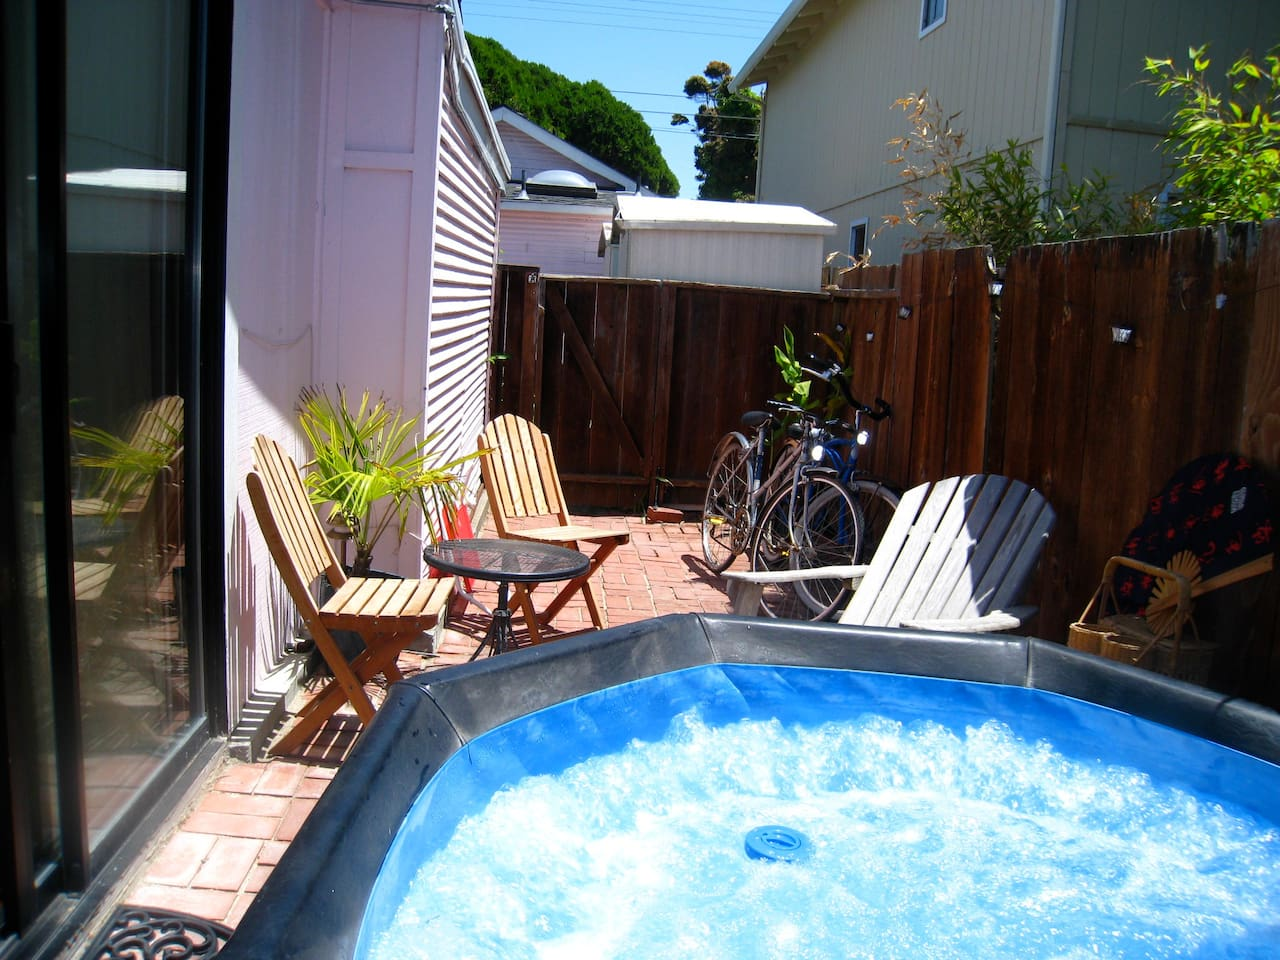 Private bubbling hot tub in your own private enclosed patio